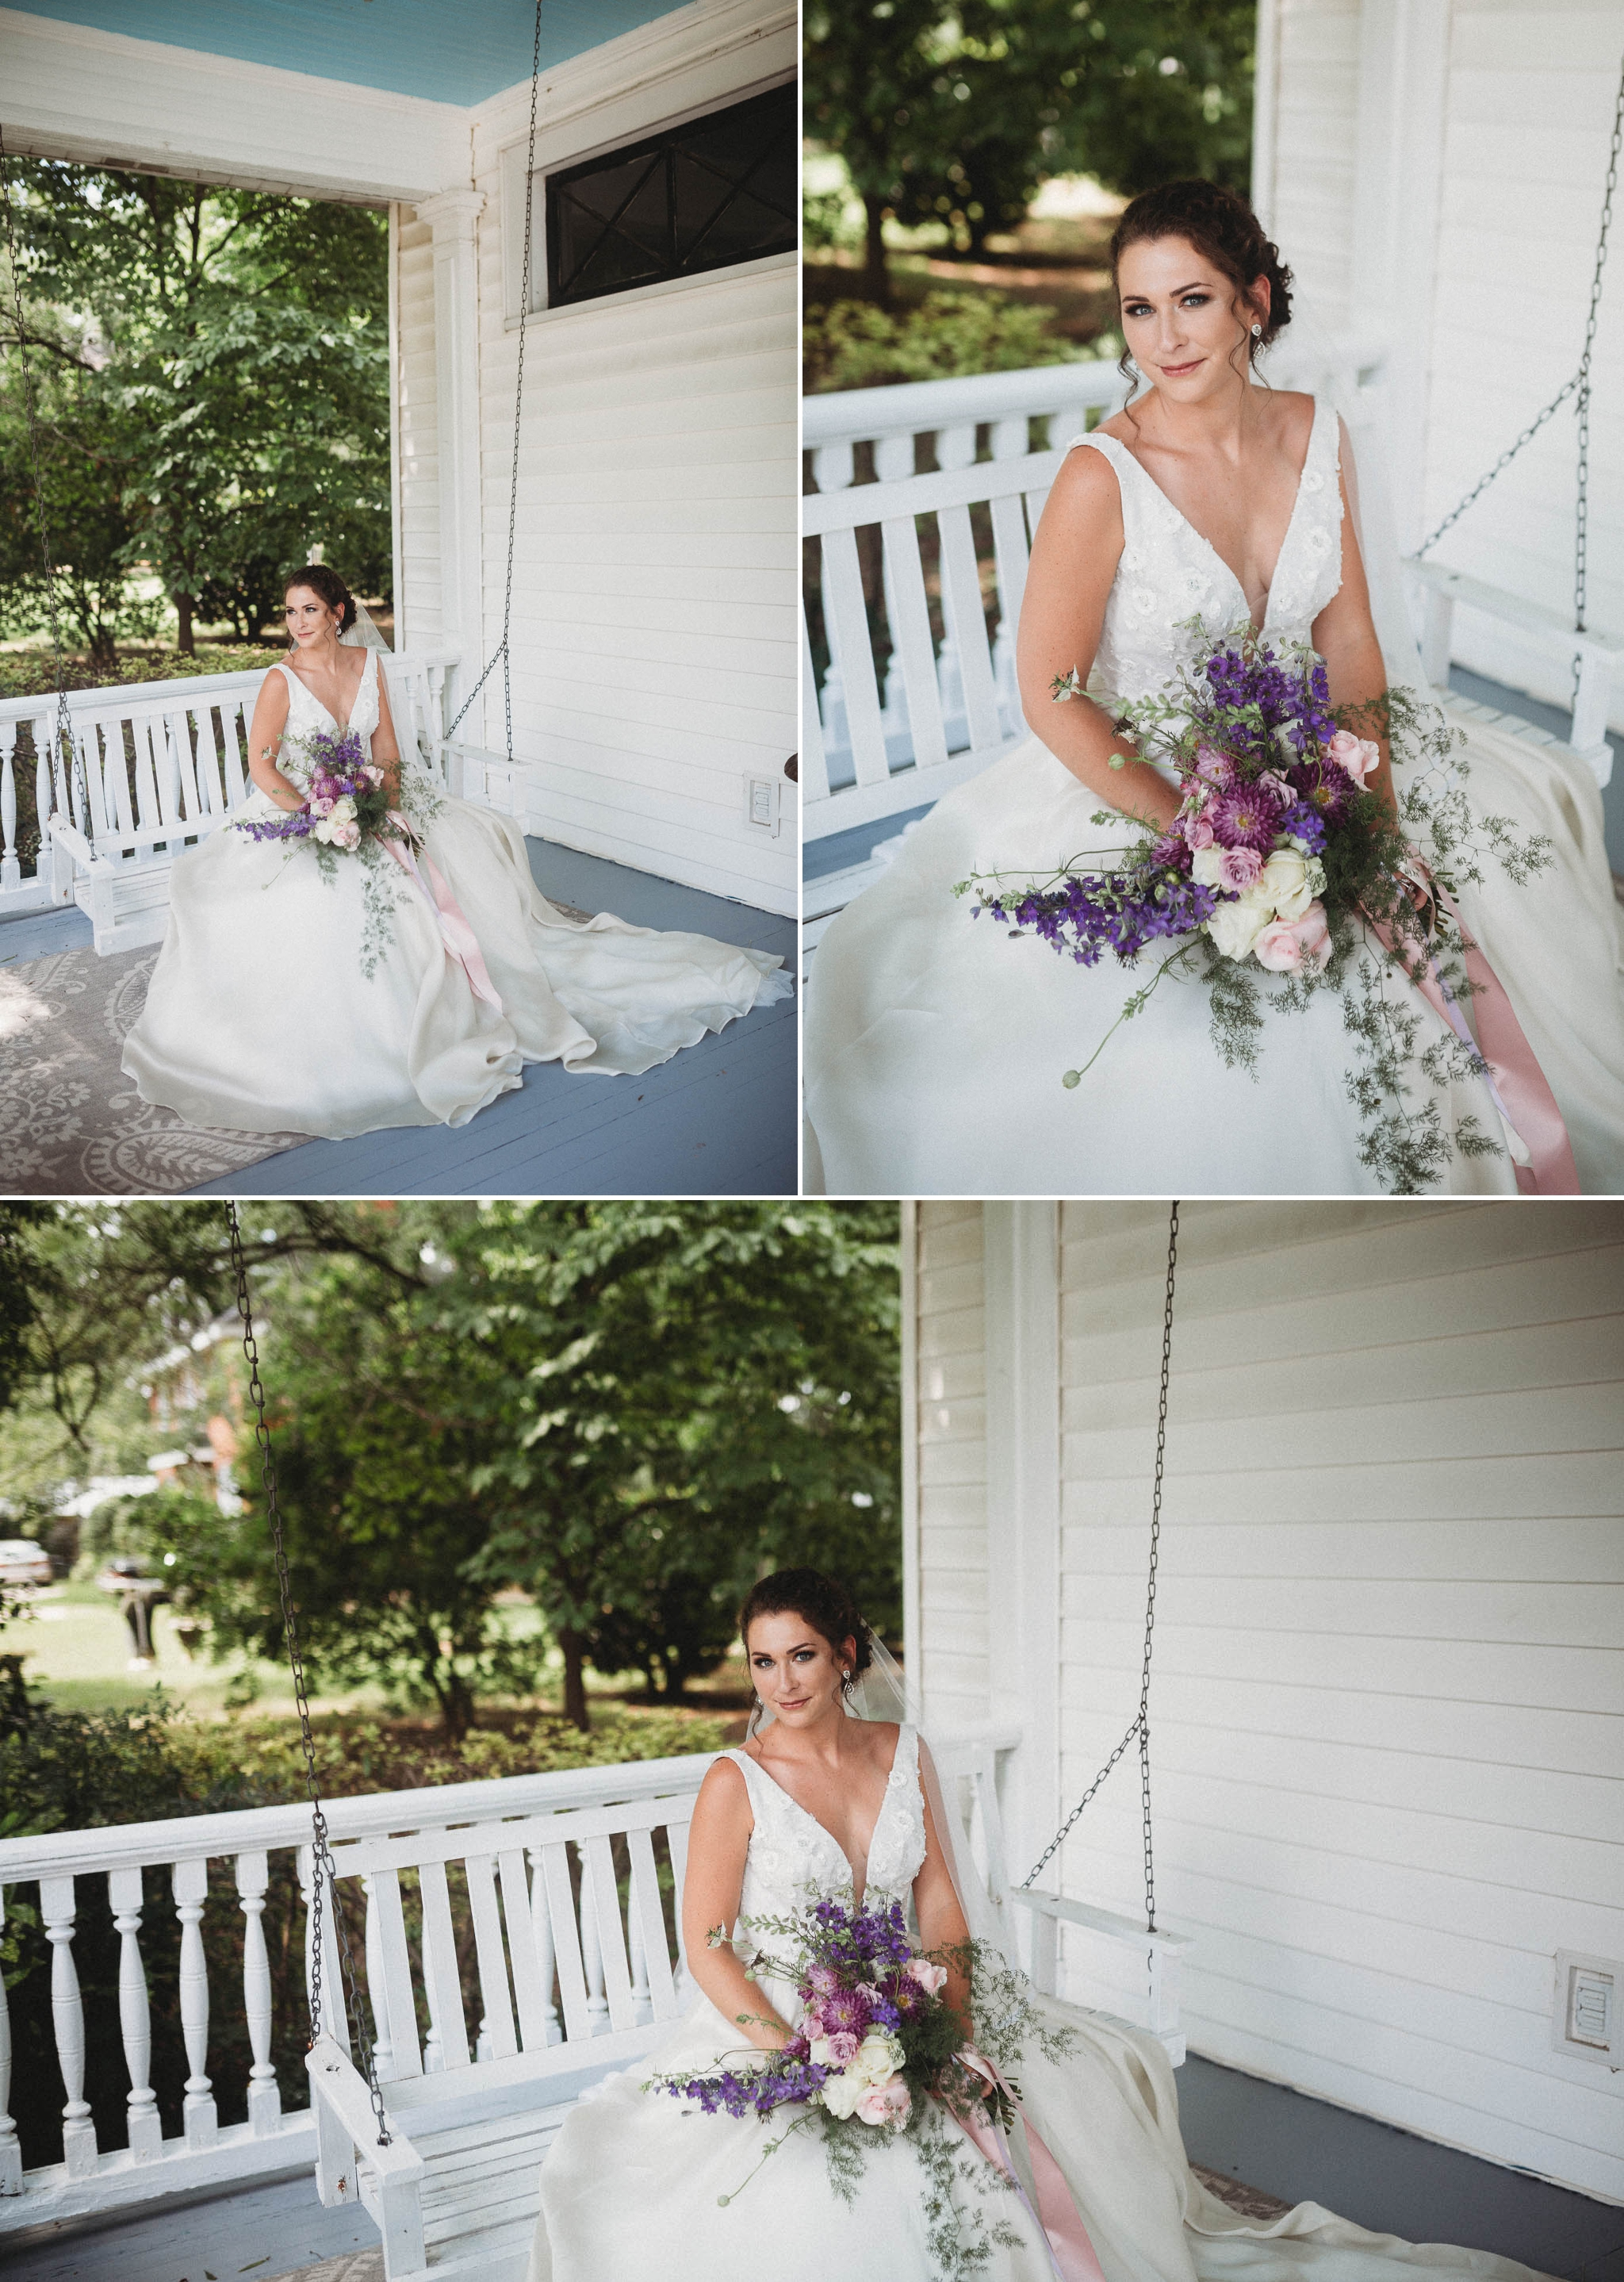 The bride on the porch swing of an old southern mansion Raleigh North Carolina Wedding Photographer